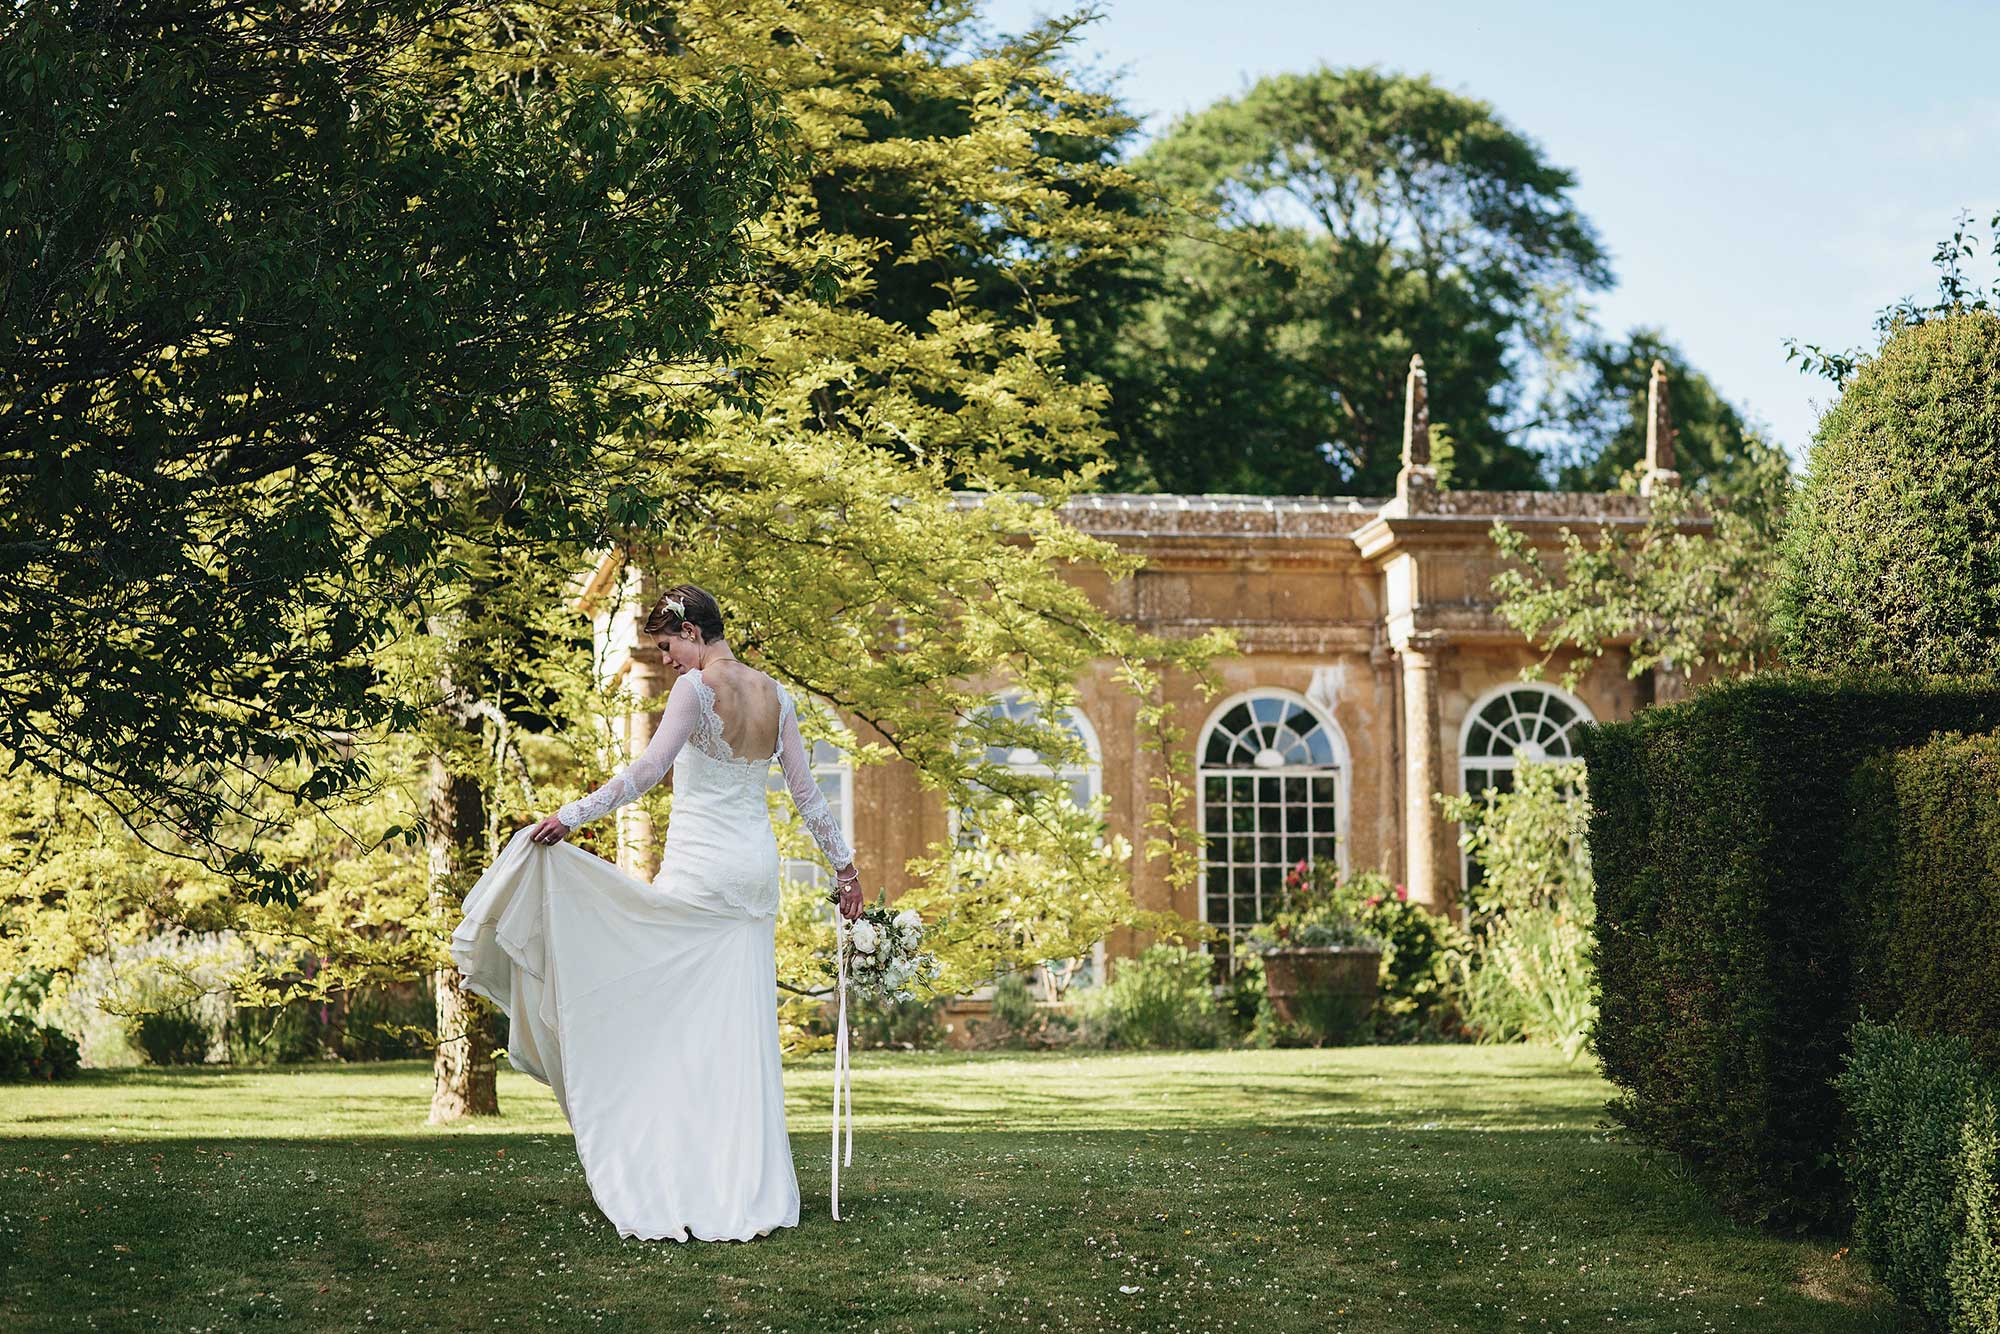 A bride in front of The Orangery at Mapperton Gardens - Dorset wedding venue